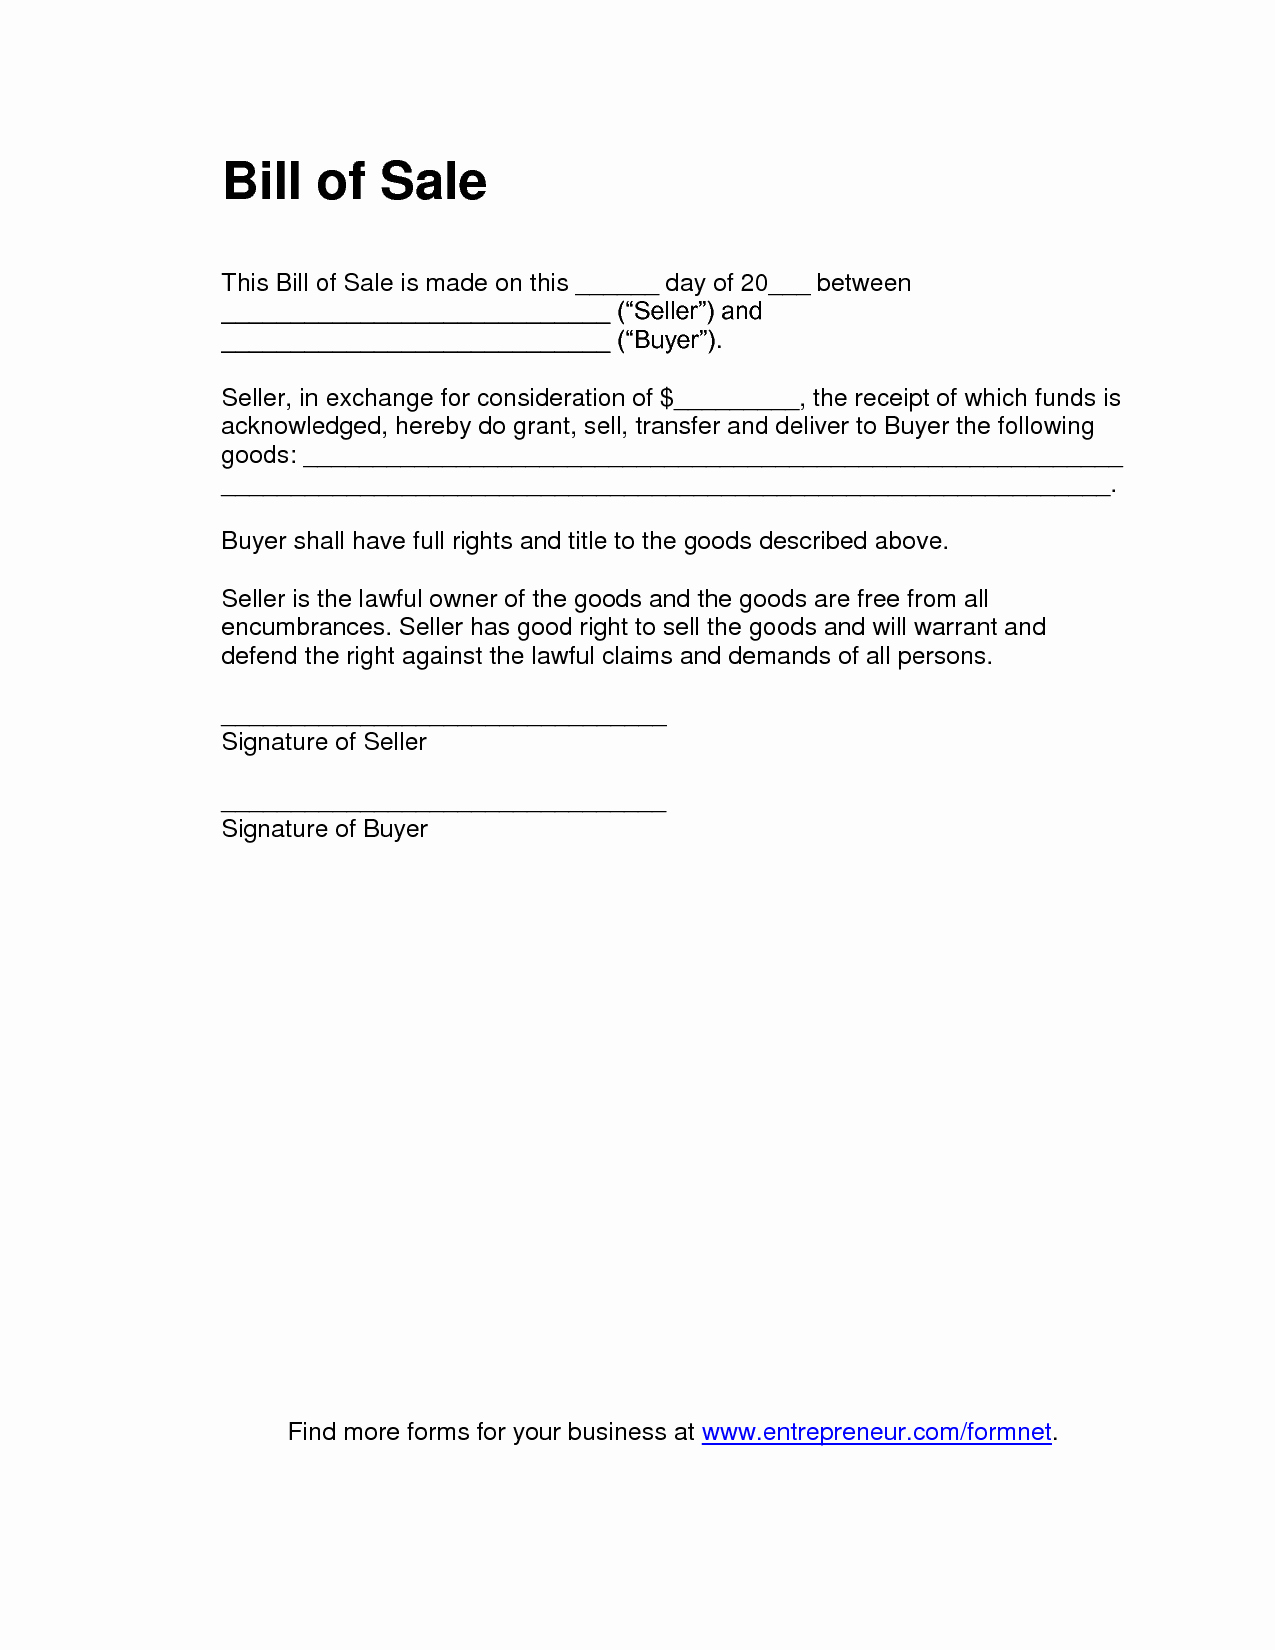 Bill Of Sale Car Sample Luxury Free Printable Bill Of Sale Templates form Generic